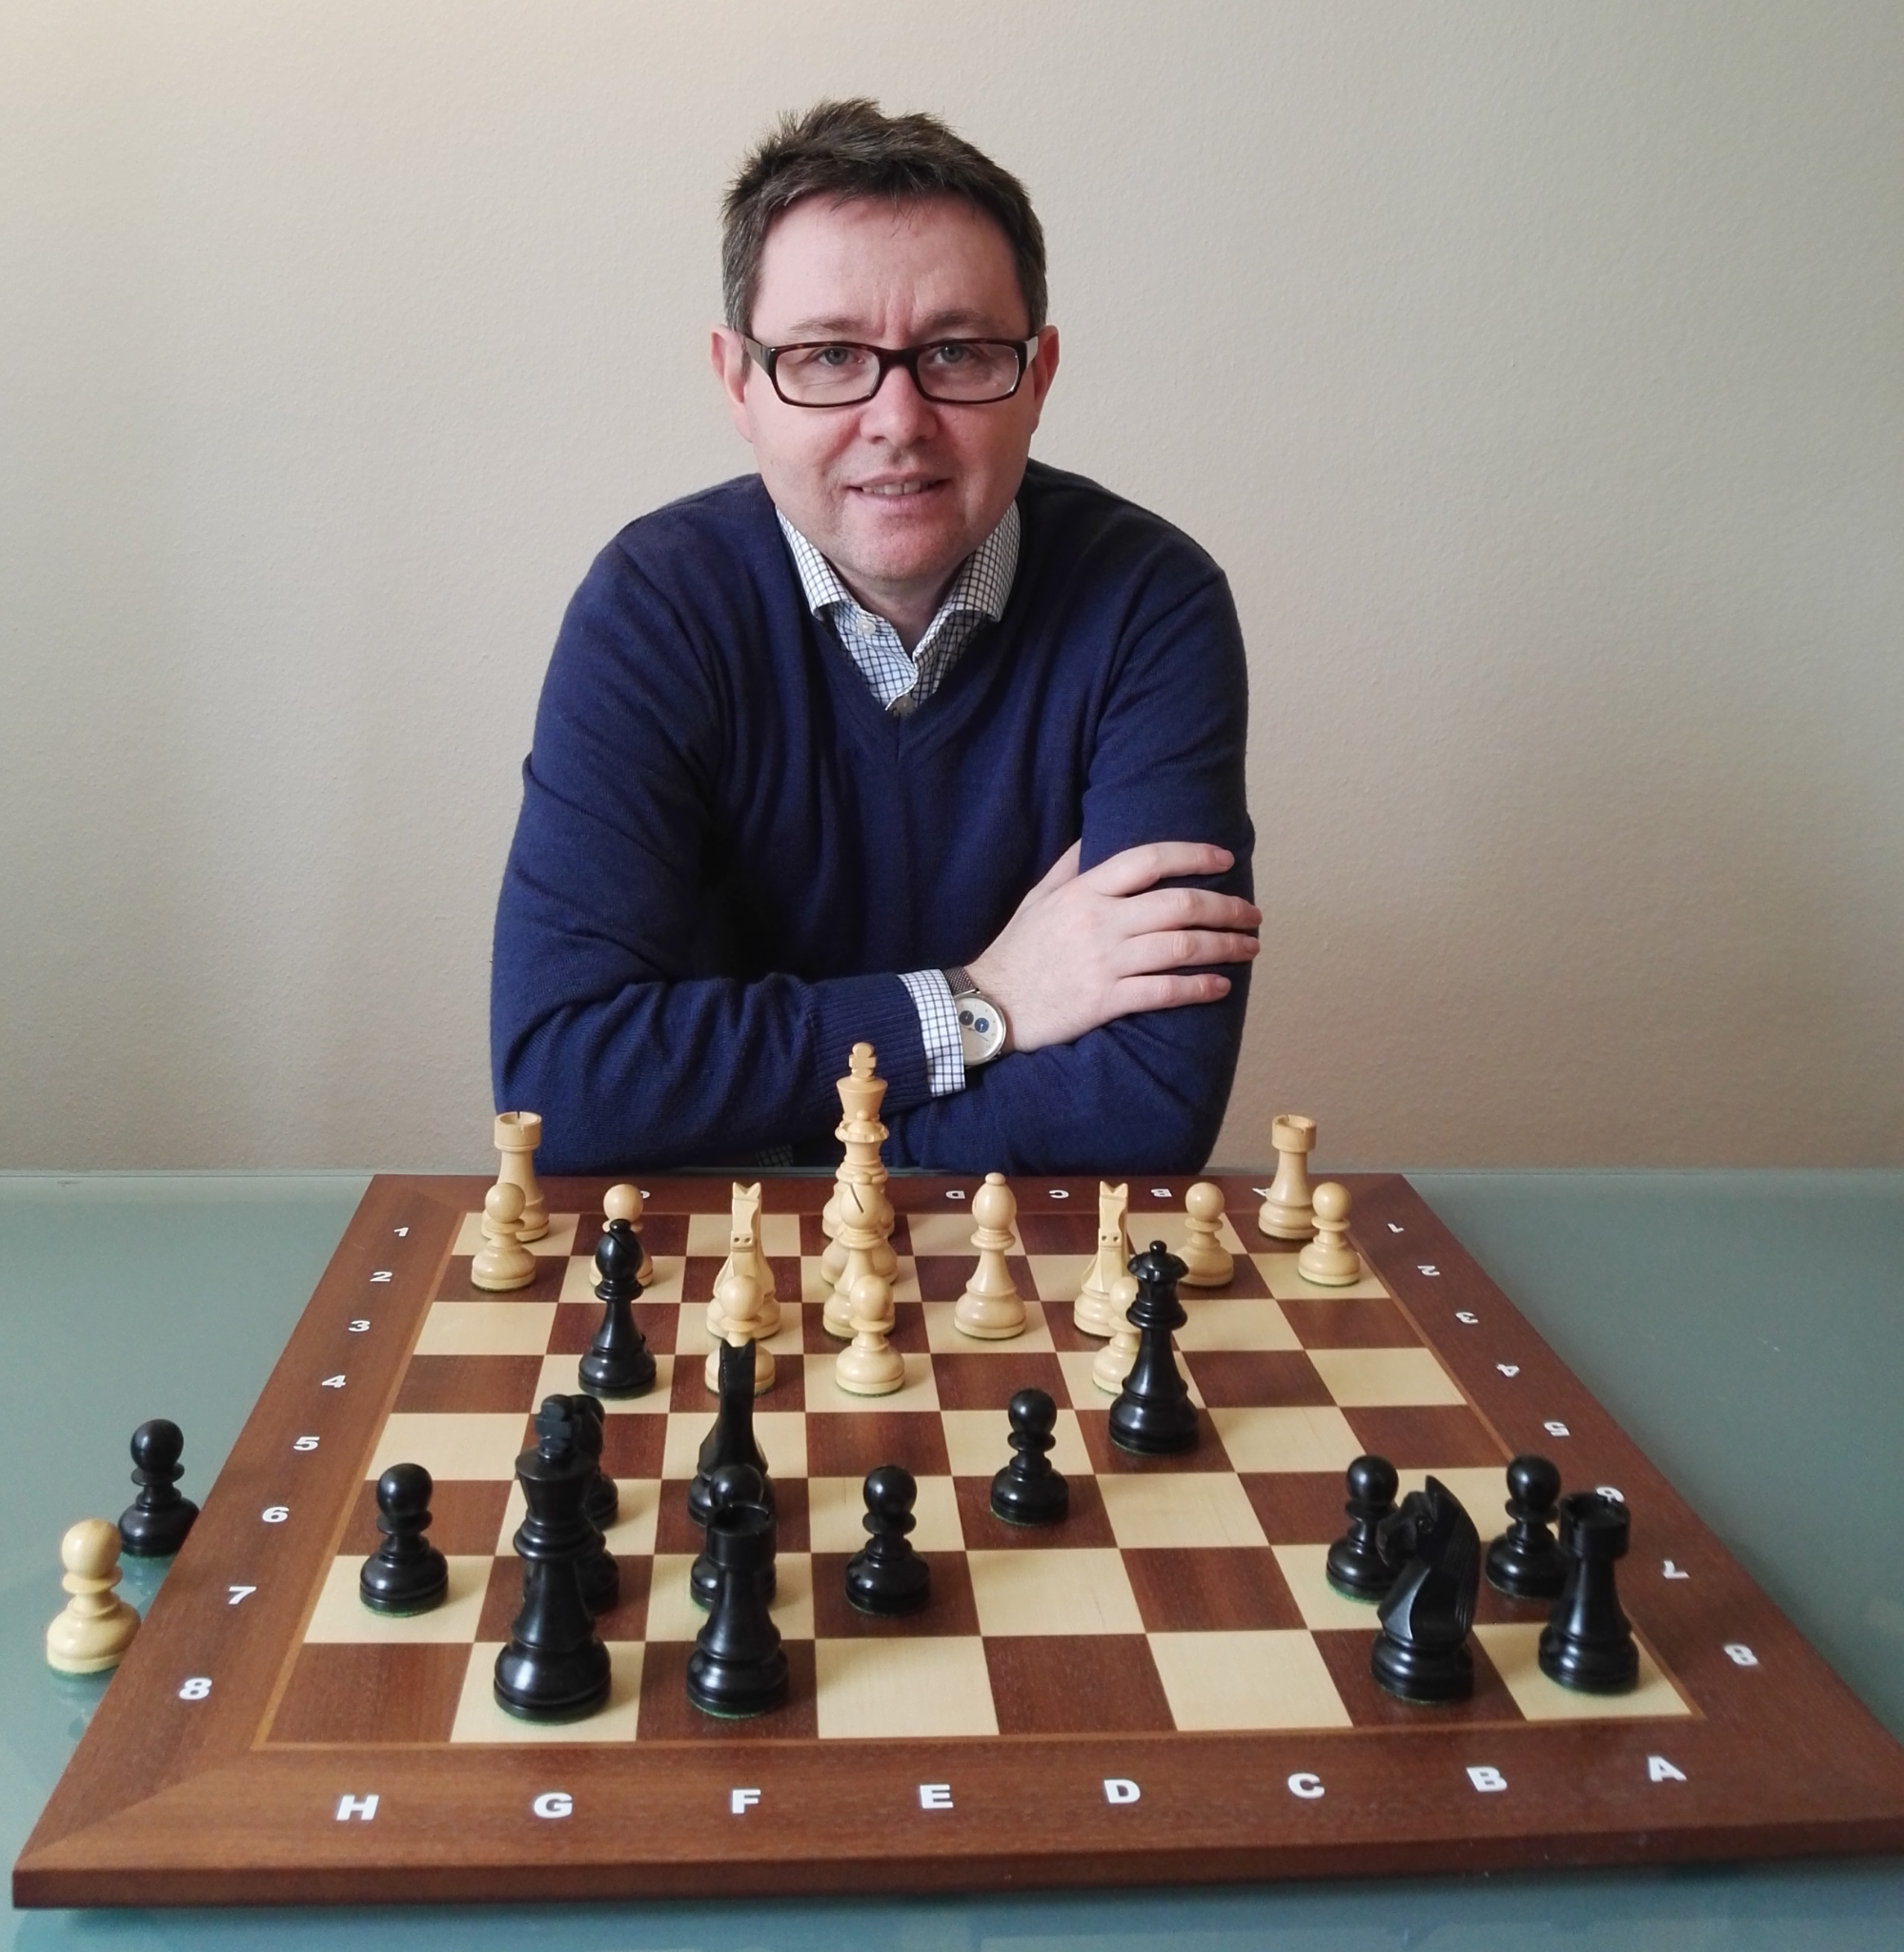 30 Min. Personal Chess Lesson with FIDE Master Barth